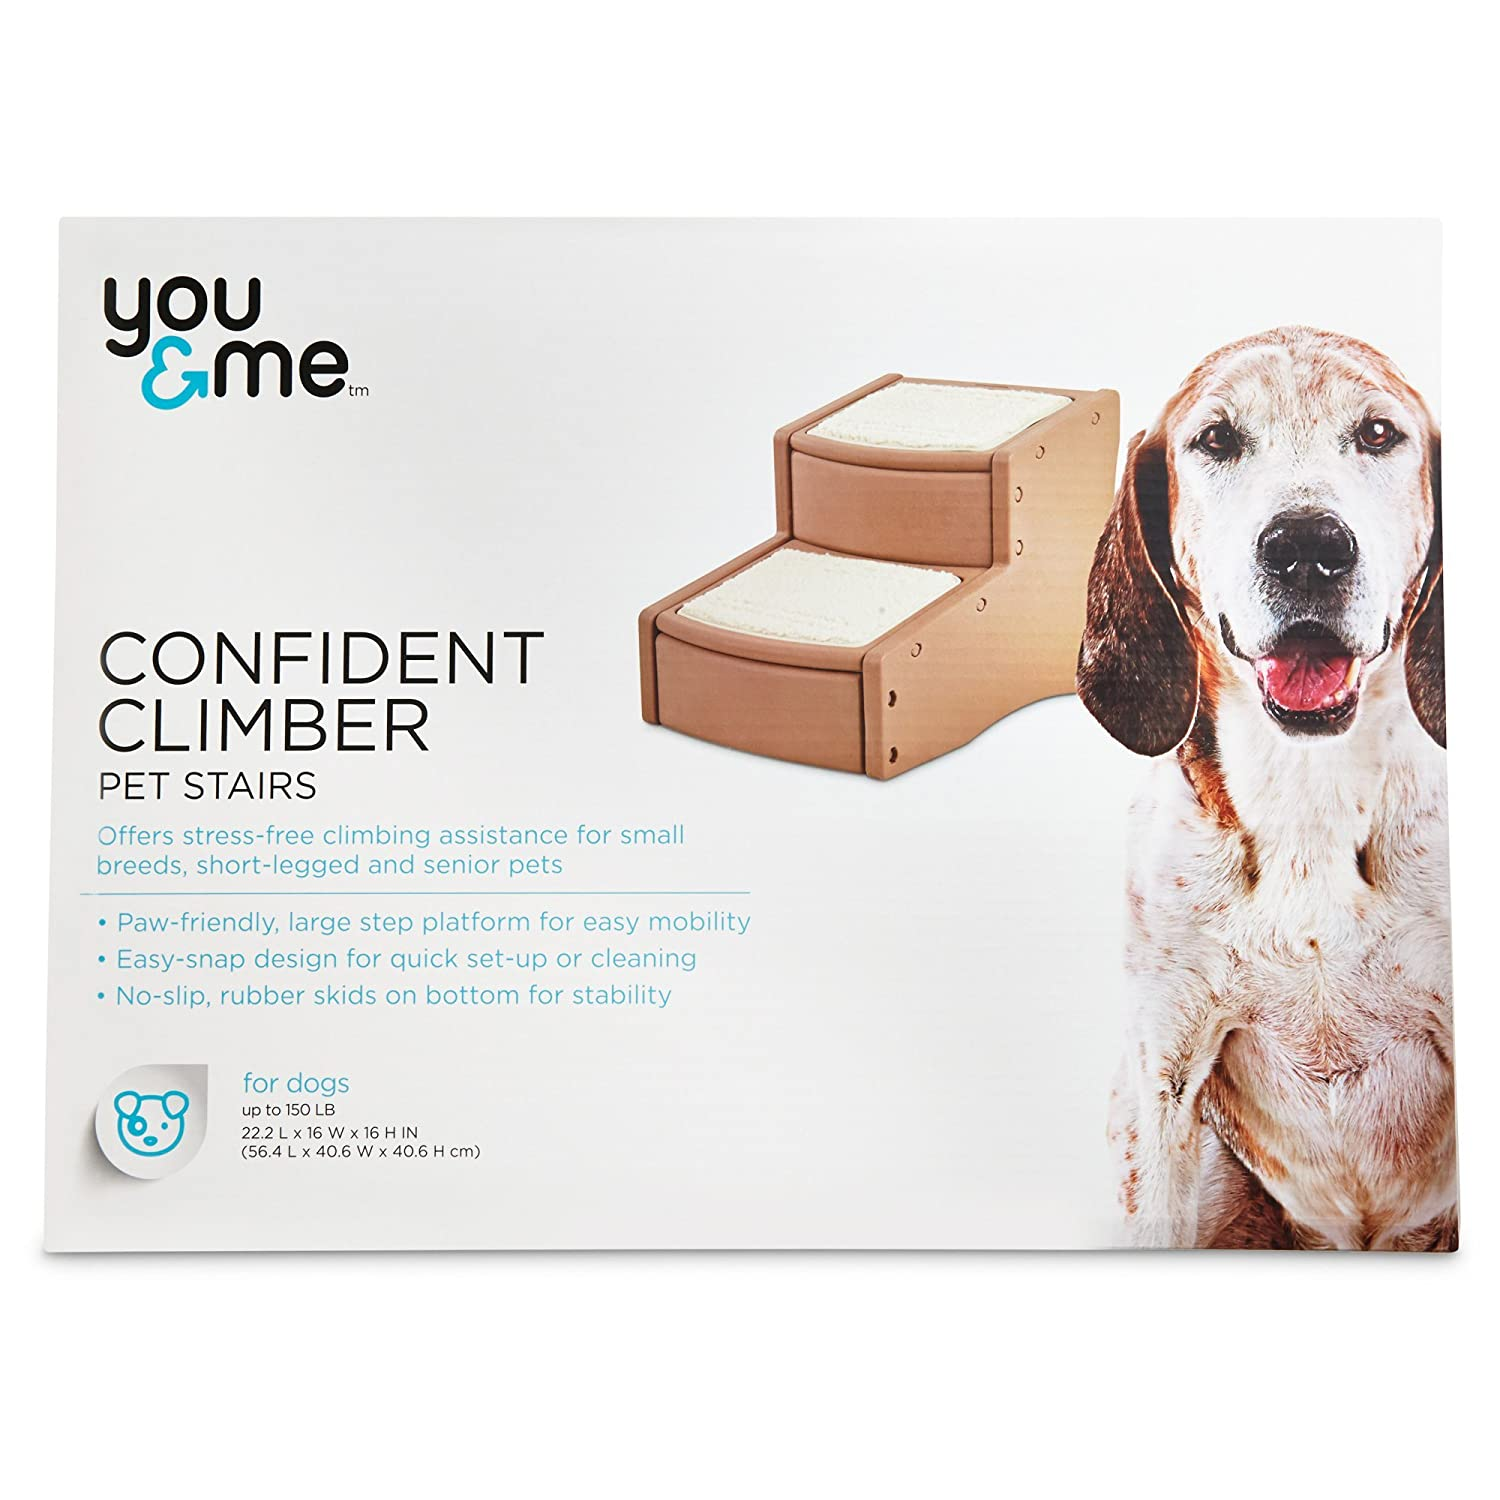 22.2 IN You & Me Confident Climber Pet Stairs, 22.2 in, Brown